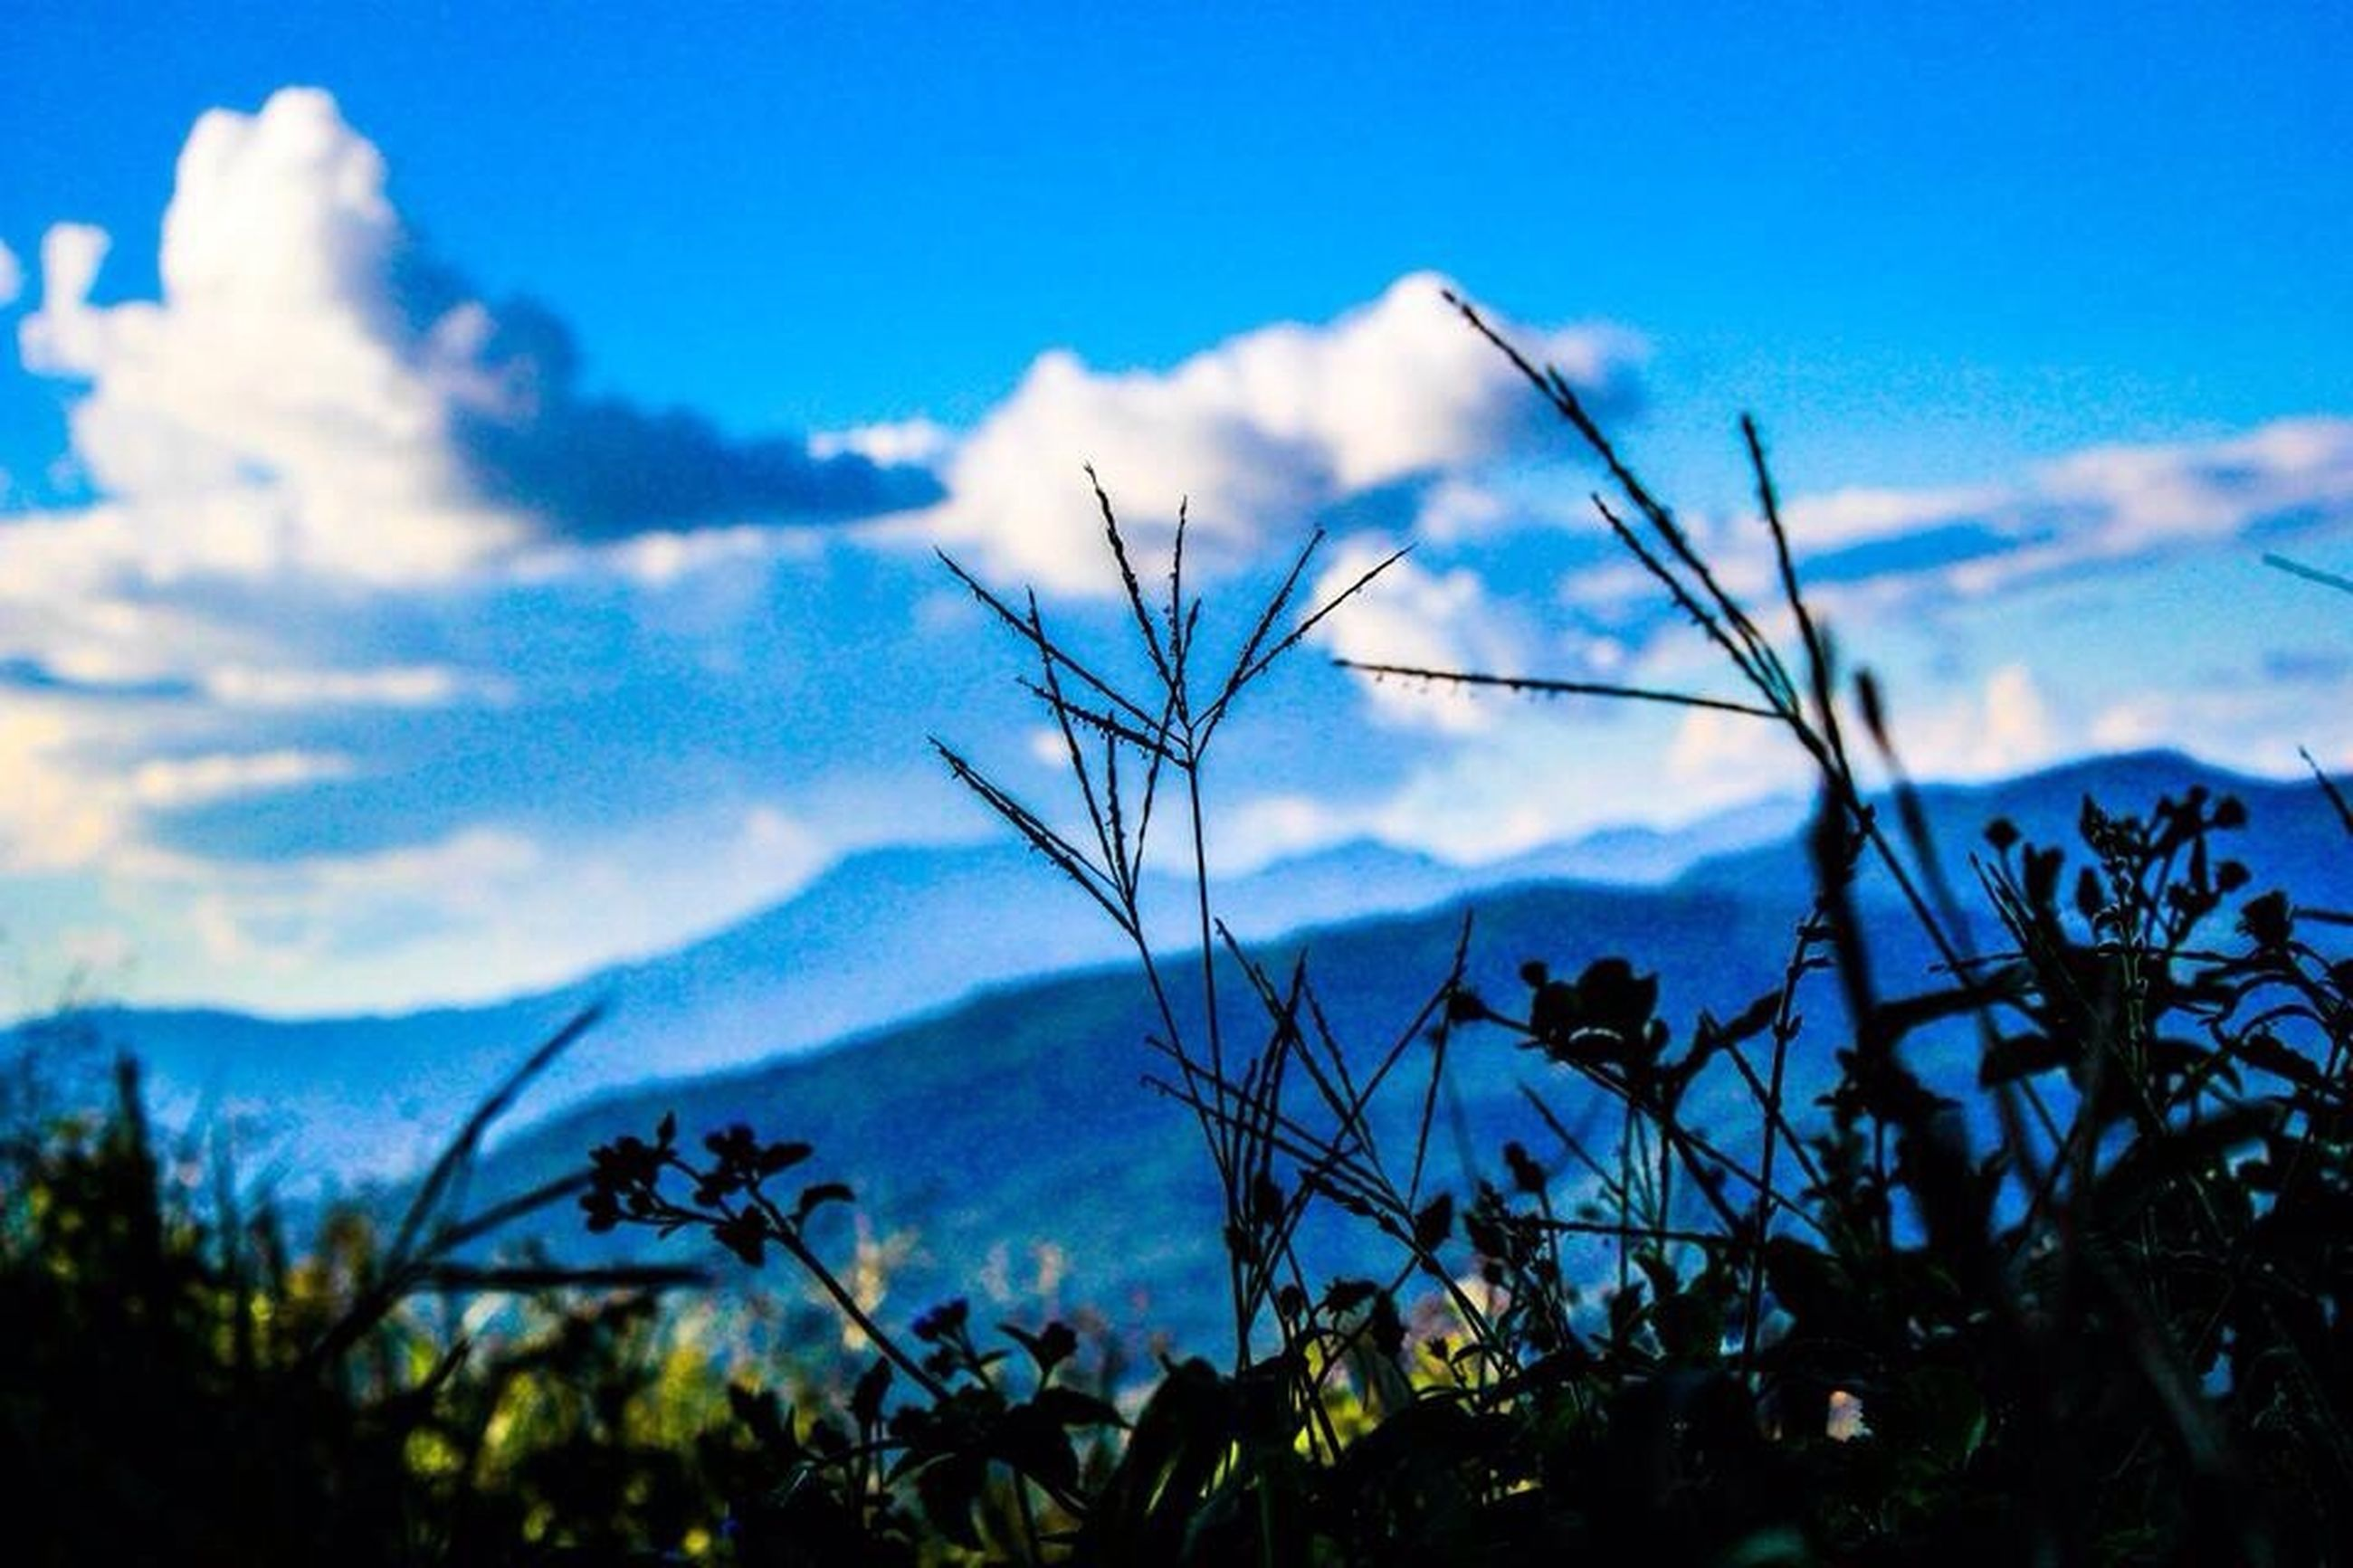 sky, blue, tranquility, beauty in nature, nature, tranquil scene, cloud - sky, scenics, cloud, plant, growth, low angle view, landscape, mountain, outdoors, day, no people, non urban scene, idyllic, tree